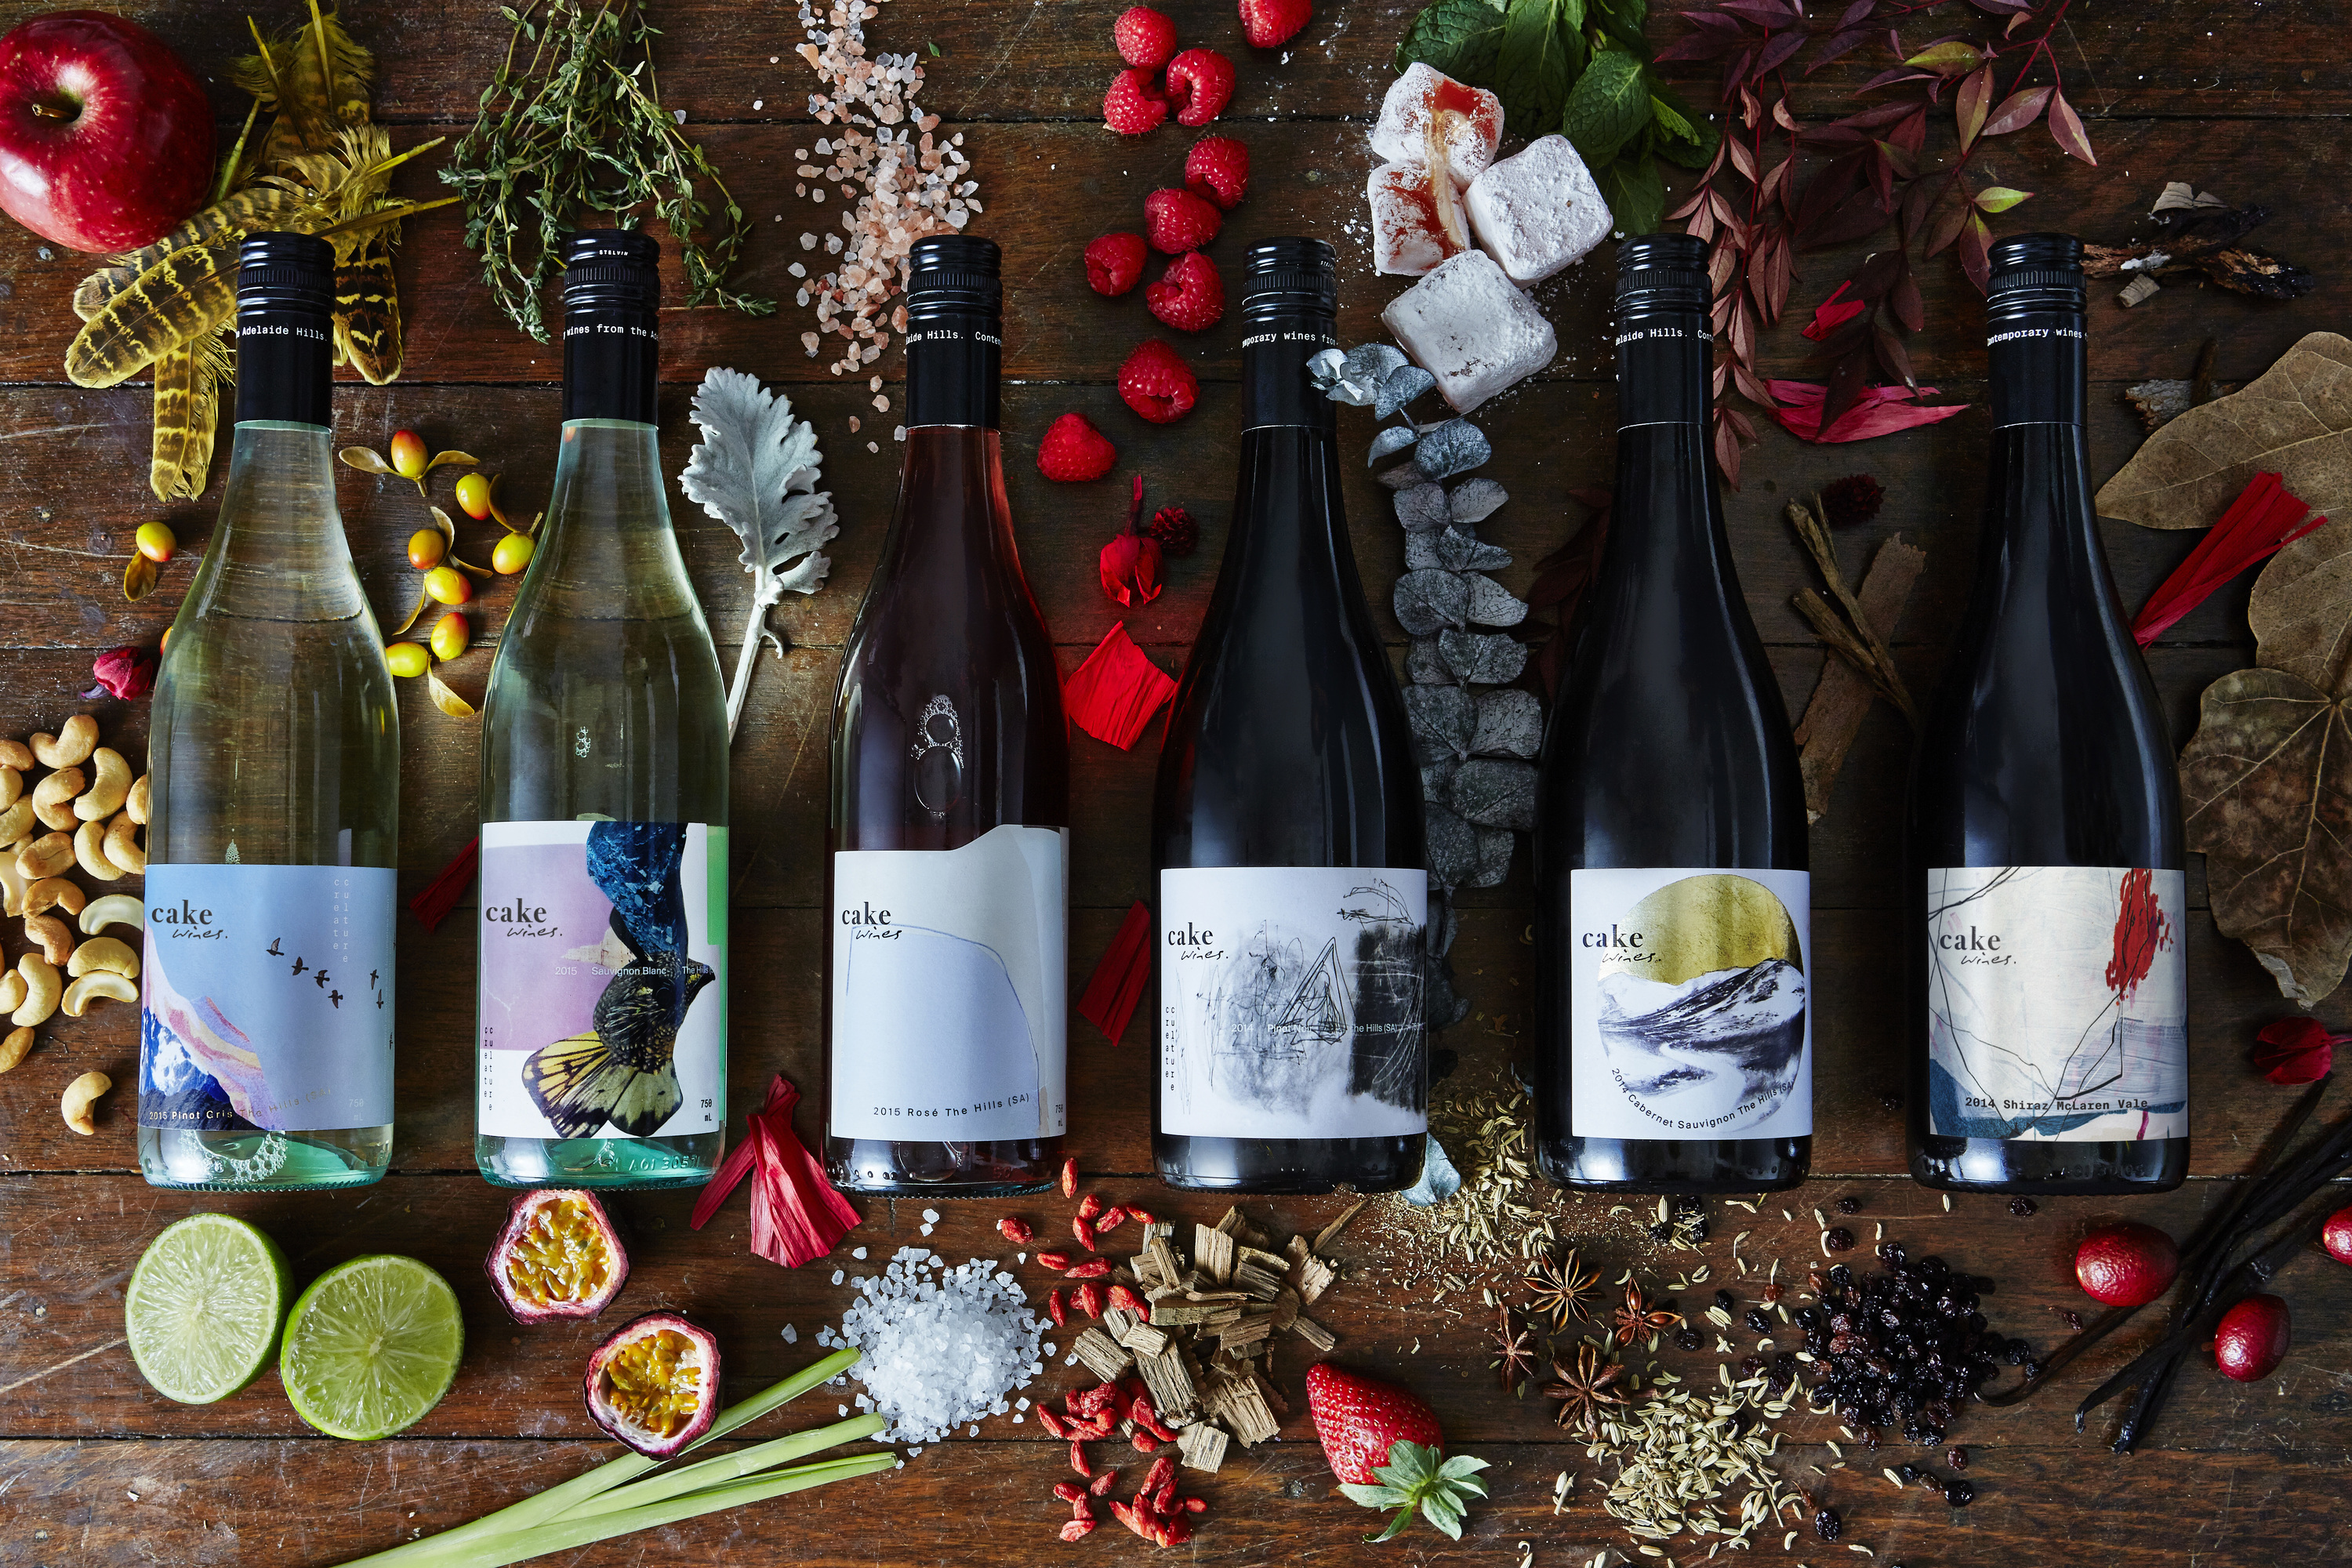 Five different wine bottles laid out on wooden table with various fruits and flowers surrounding them